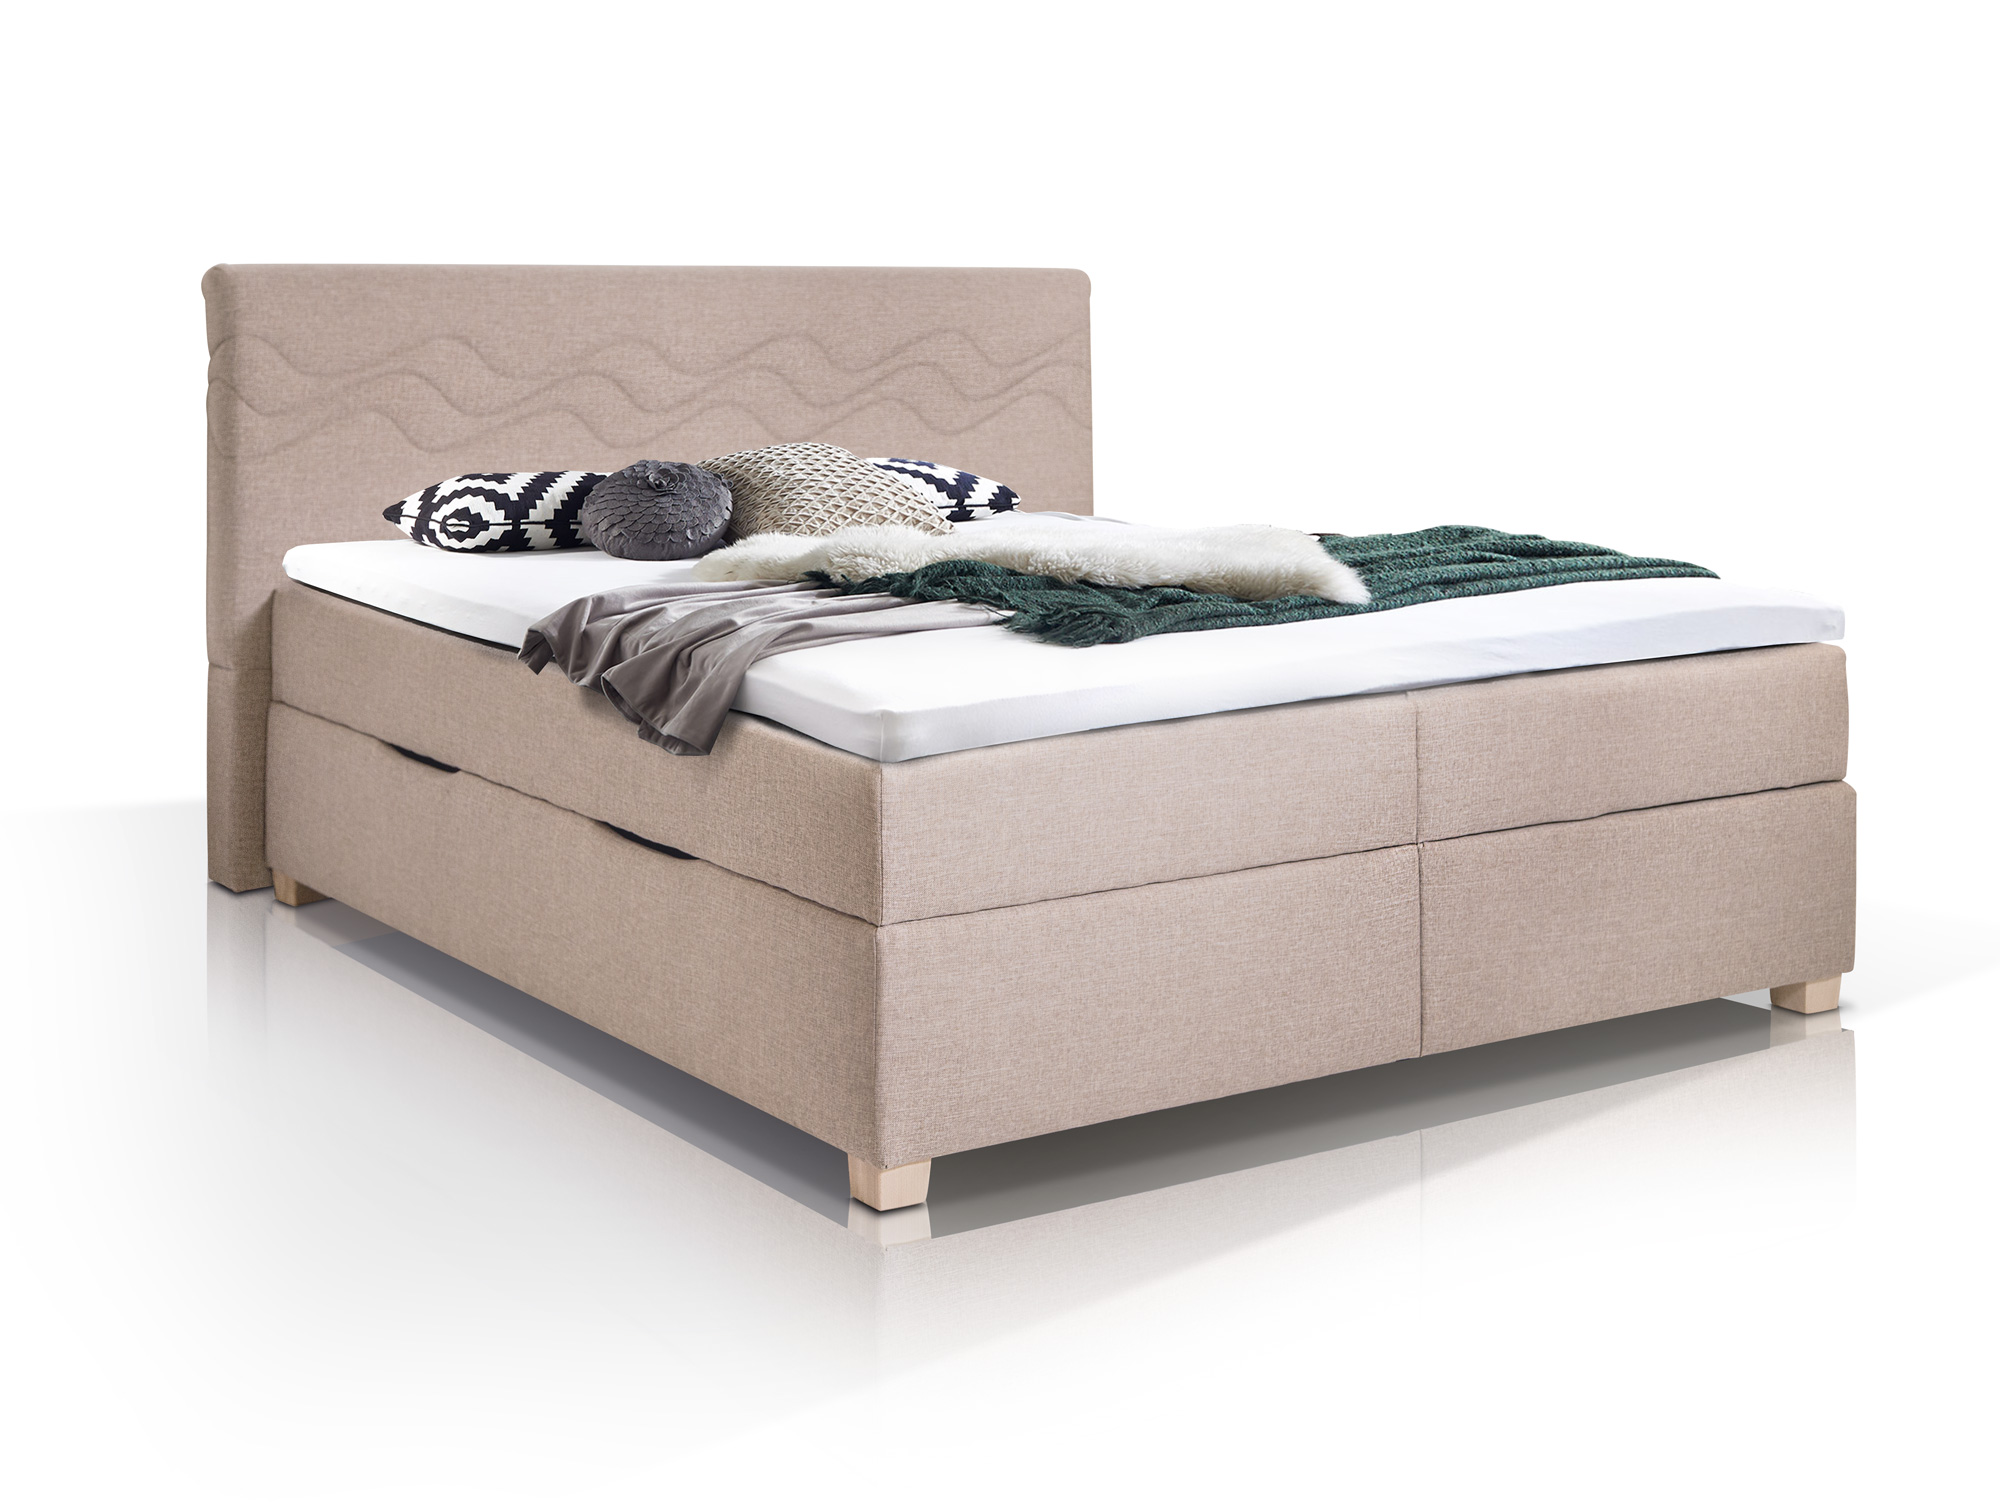 wave boxspringbett mit stoffbezug inklusive bettkasten 200 x 200 cm beige h rtegrad 3. Black Bedroom Furniture Sets. Home Design Ideas